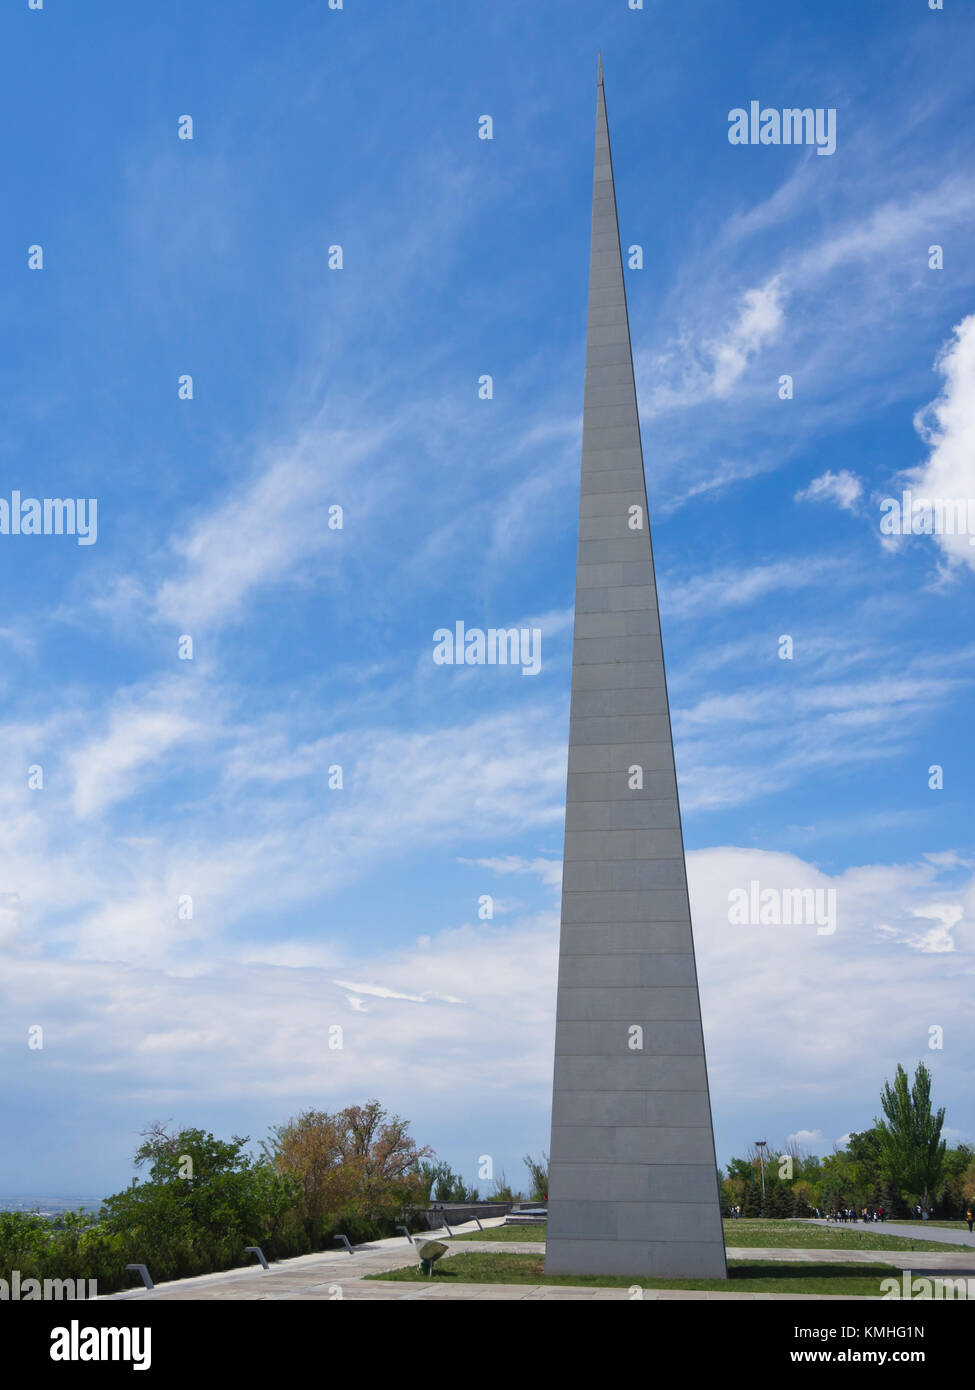 Armenian heritage, the genocide memorial and museum, Tsitsernakaberd,on a hilltop n Yerevan Armenia, close up of - Stock Image